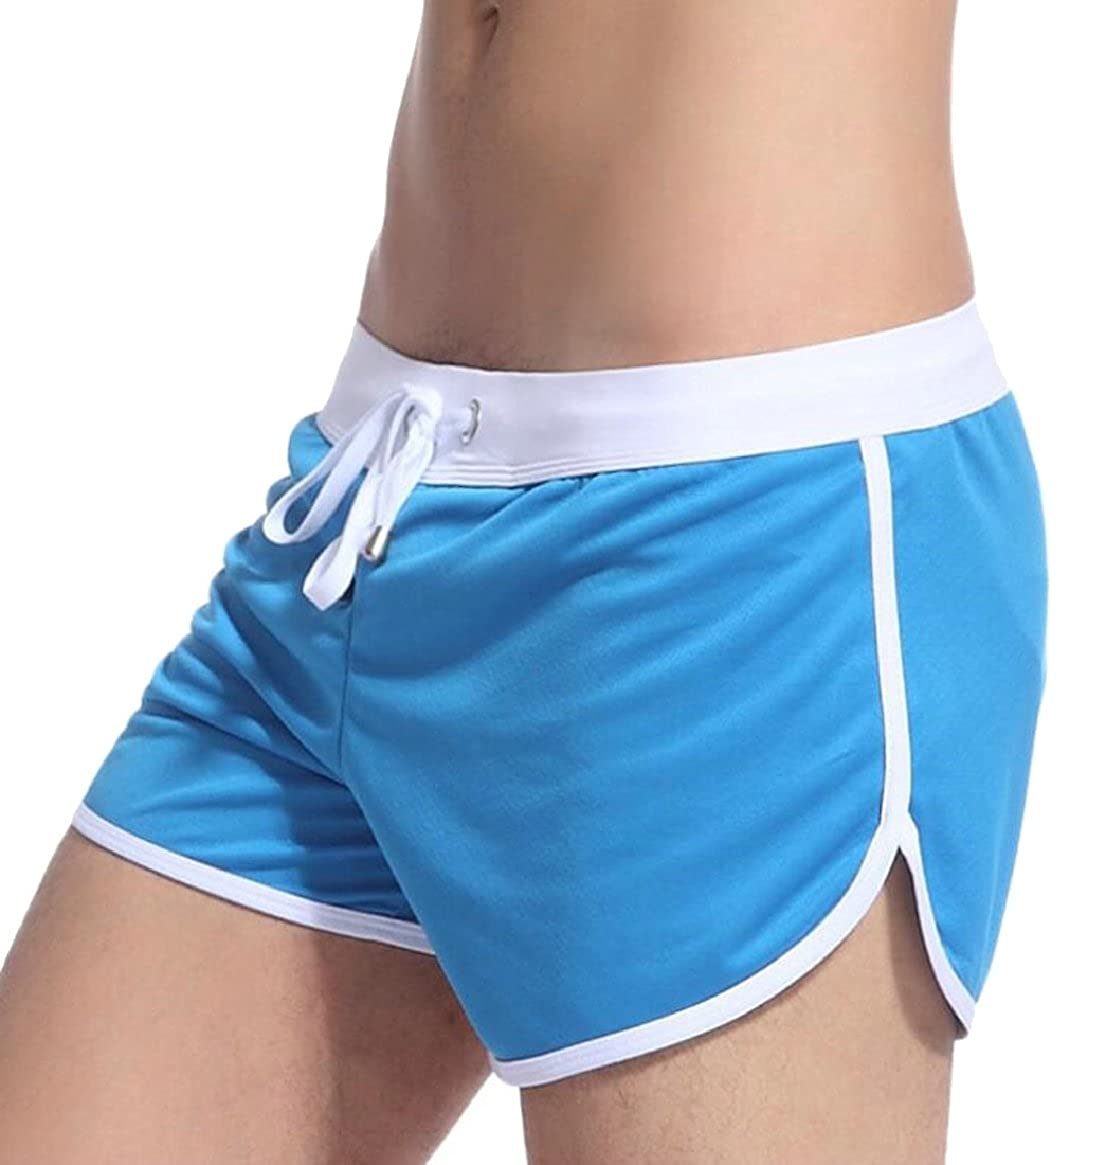 Tymhgt Bodybuilding Fitted Shorts Mens Workout Gym Running Tight Lifting Shorts